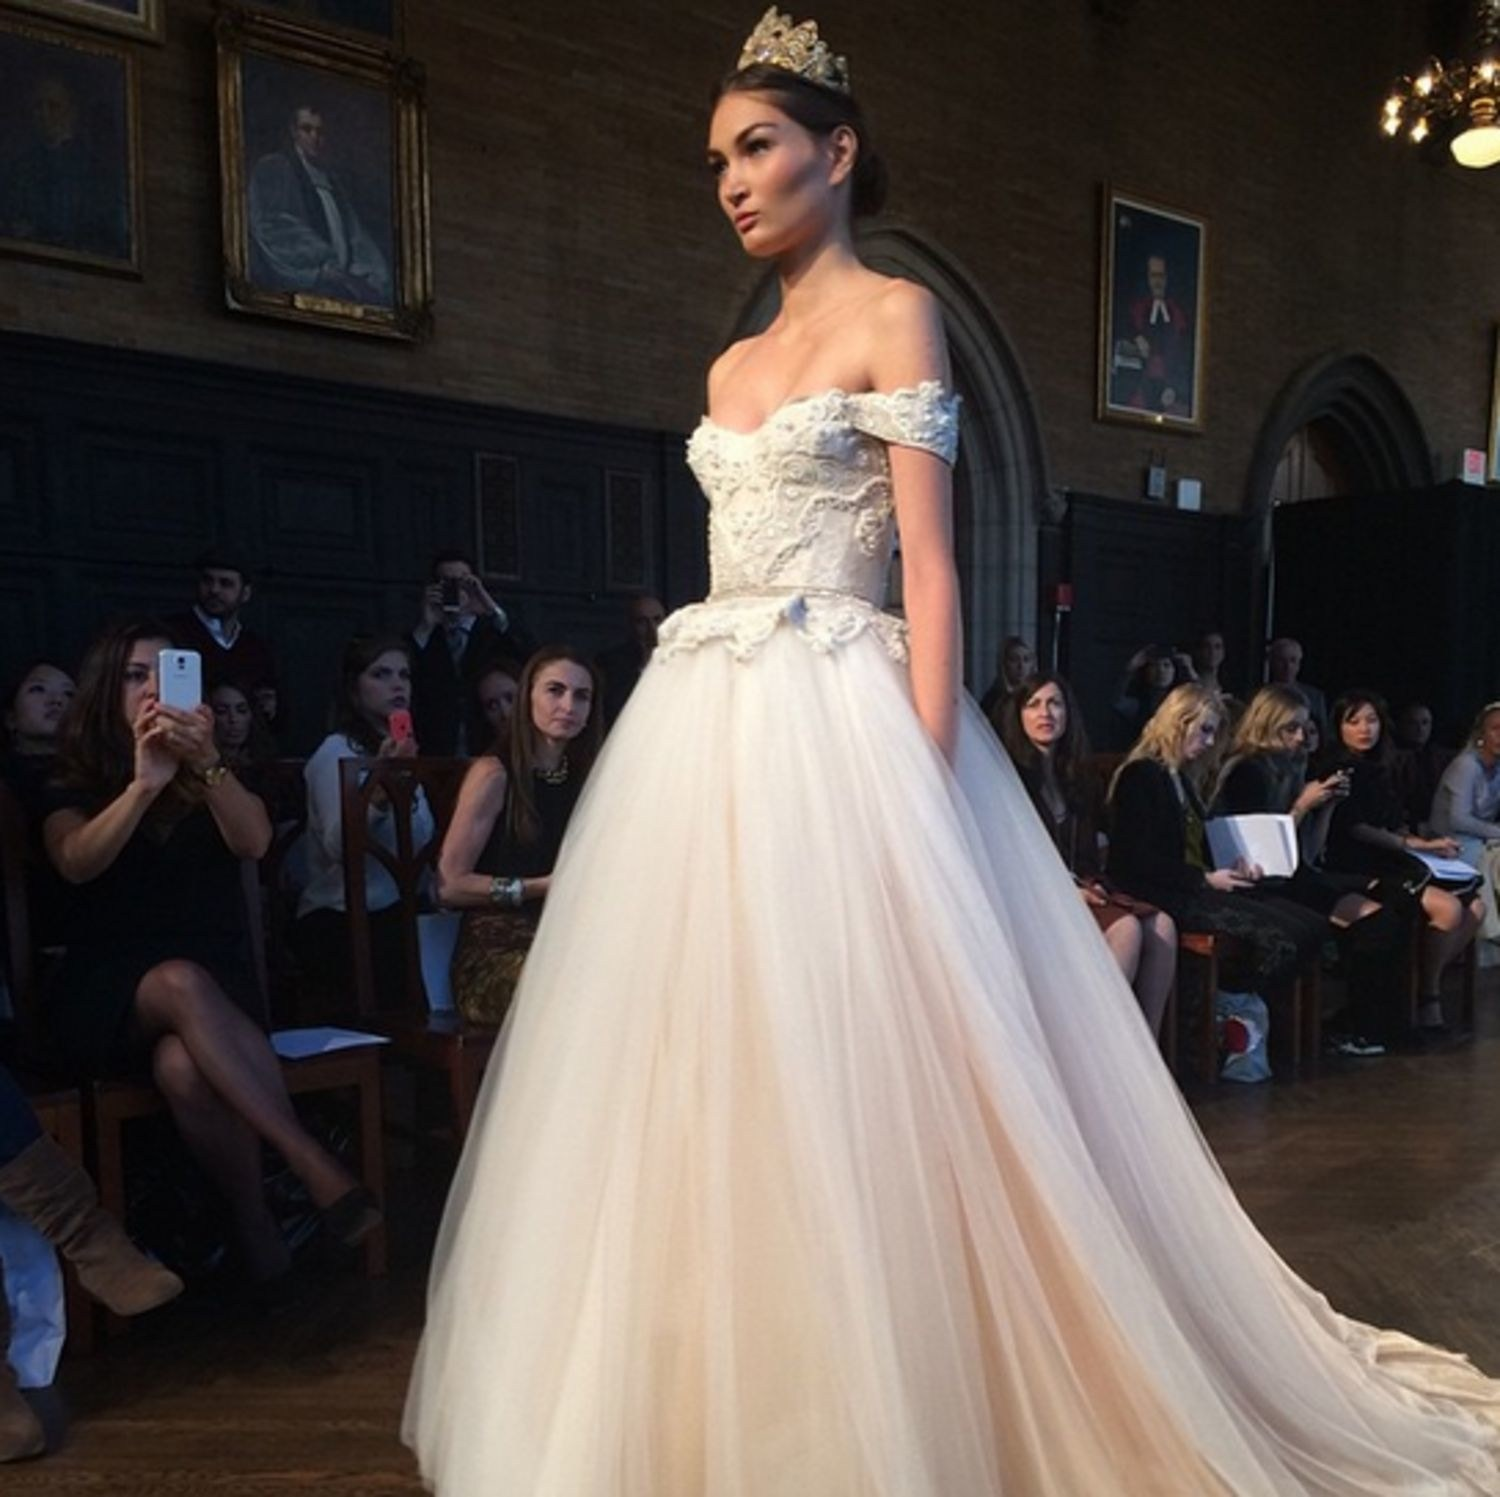 Wedding Gowns And Their Prices: Austin Scarlett Wedding Dresses Prices